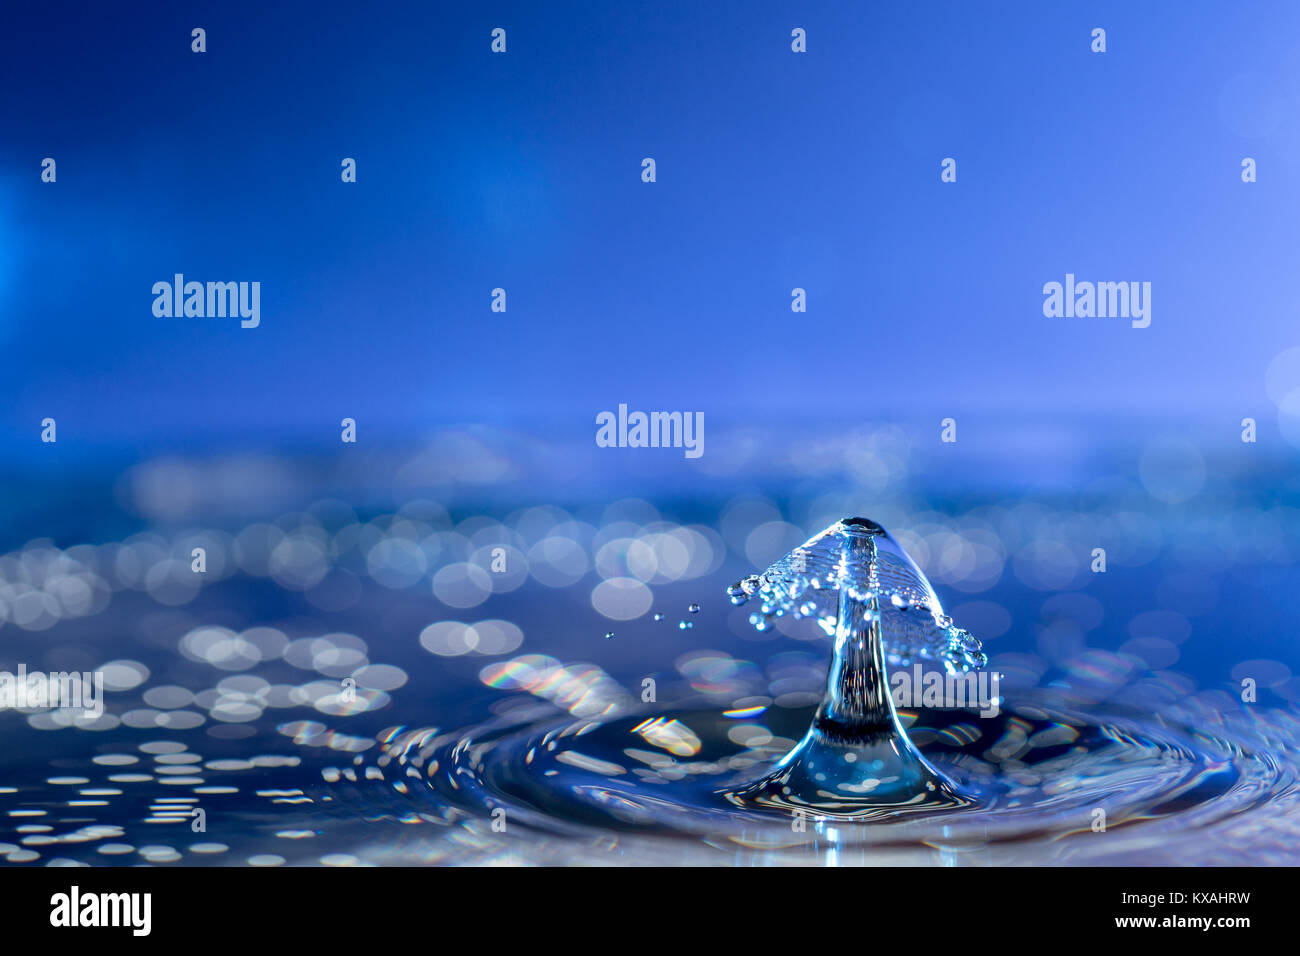 Photograph of Water droplets with a coloured background. also known as water droplet collision. - Stock Image